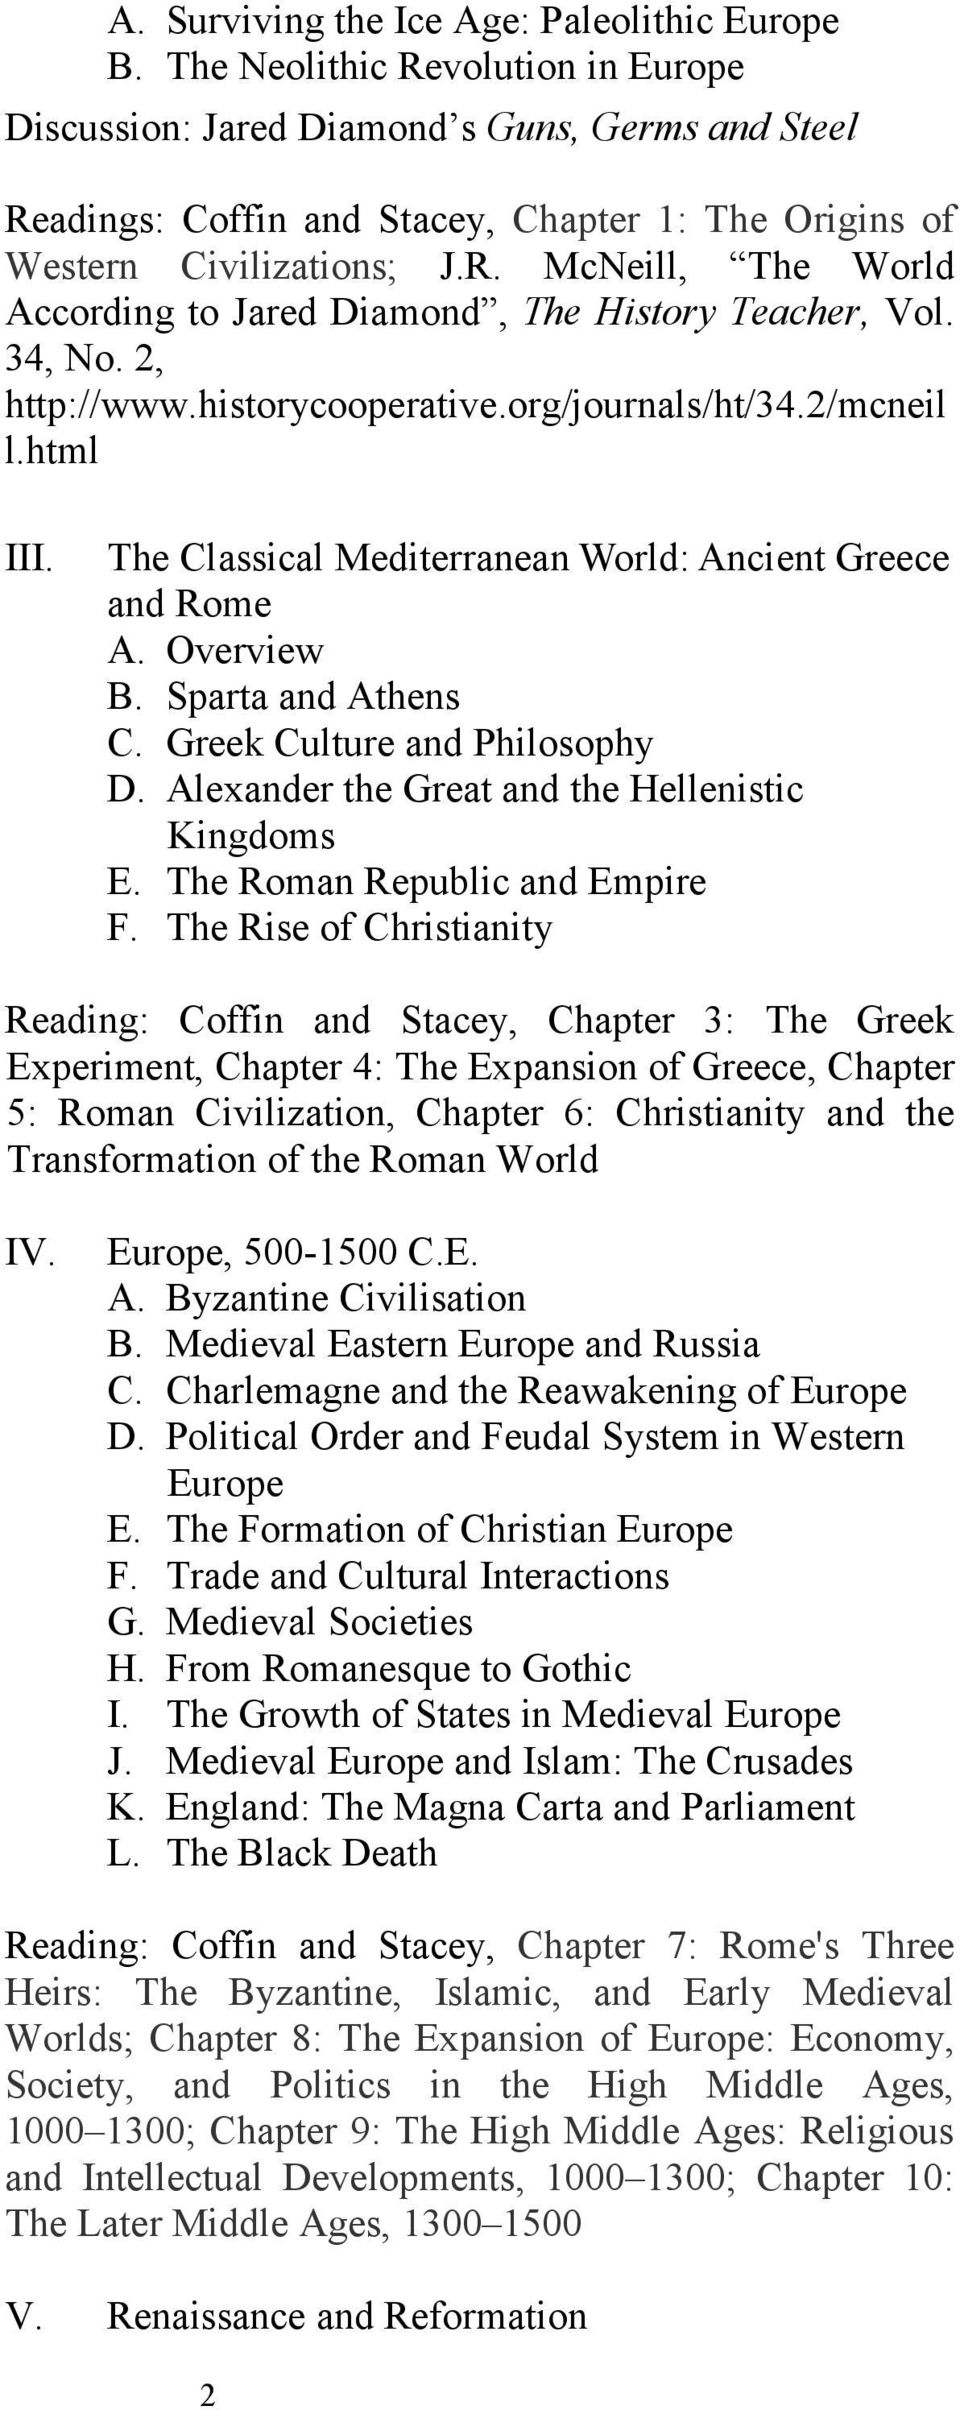 34, No. 2, http://www.historycooperative.org/journals/ht/34.2/mcneil l.html III. The Classical Mediterranean World: Ancient Greece and Rome A. Overview B. Sparta and Athens C.